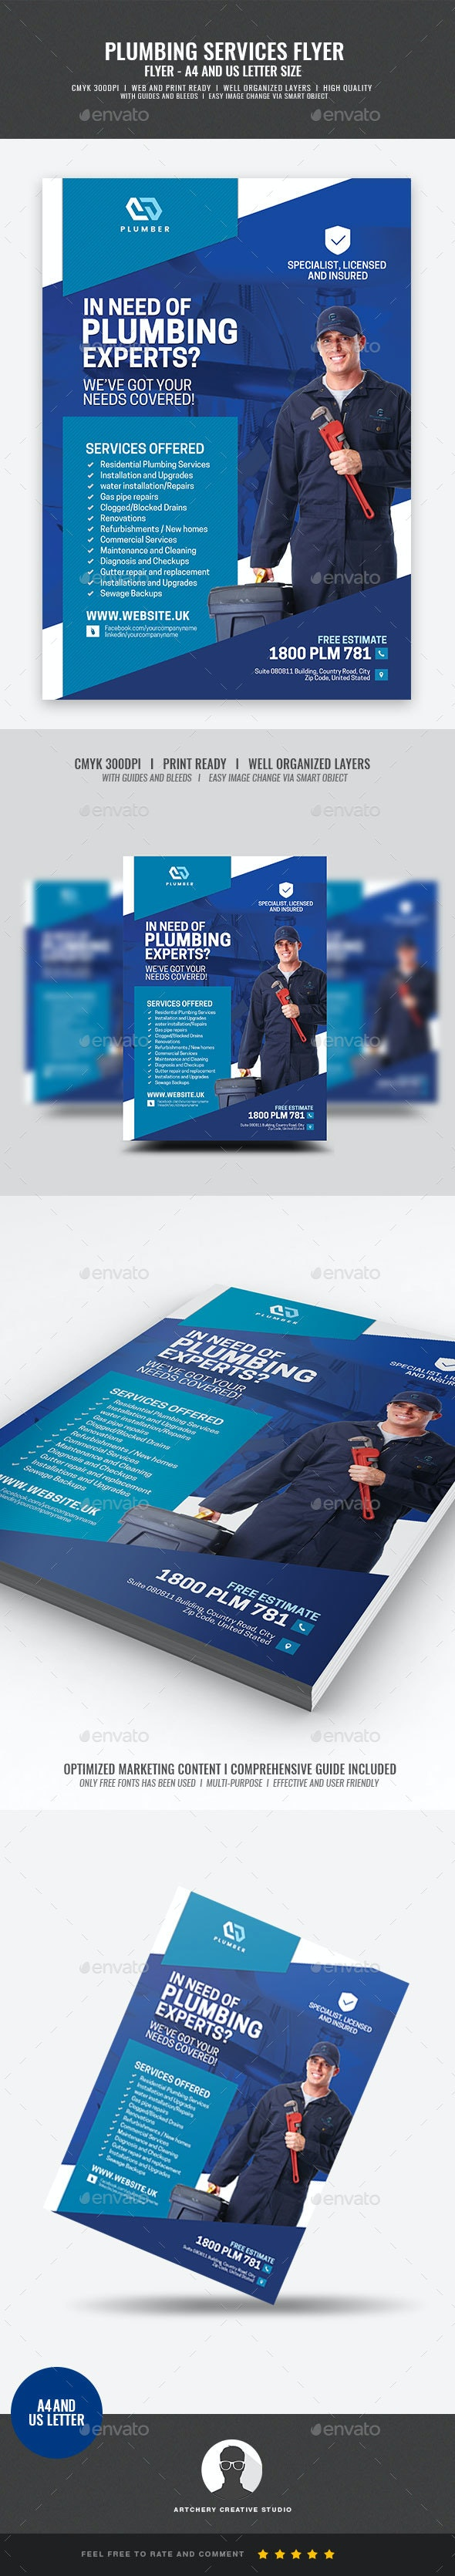 Plumber Services Flyer - Commerce Flyers